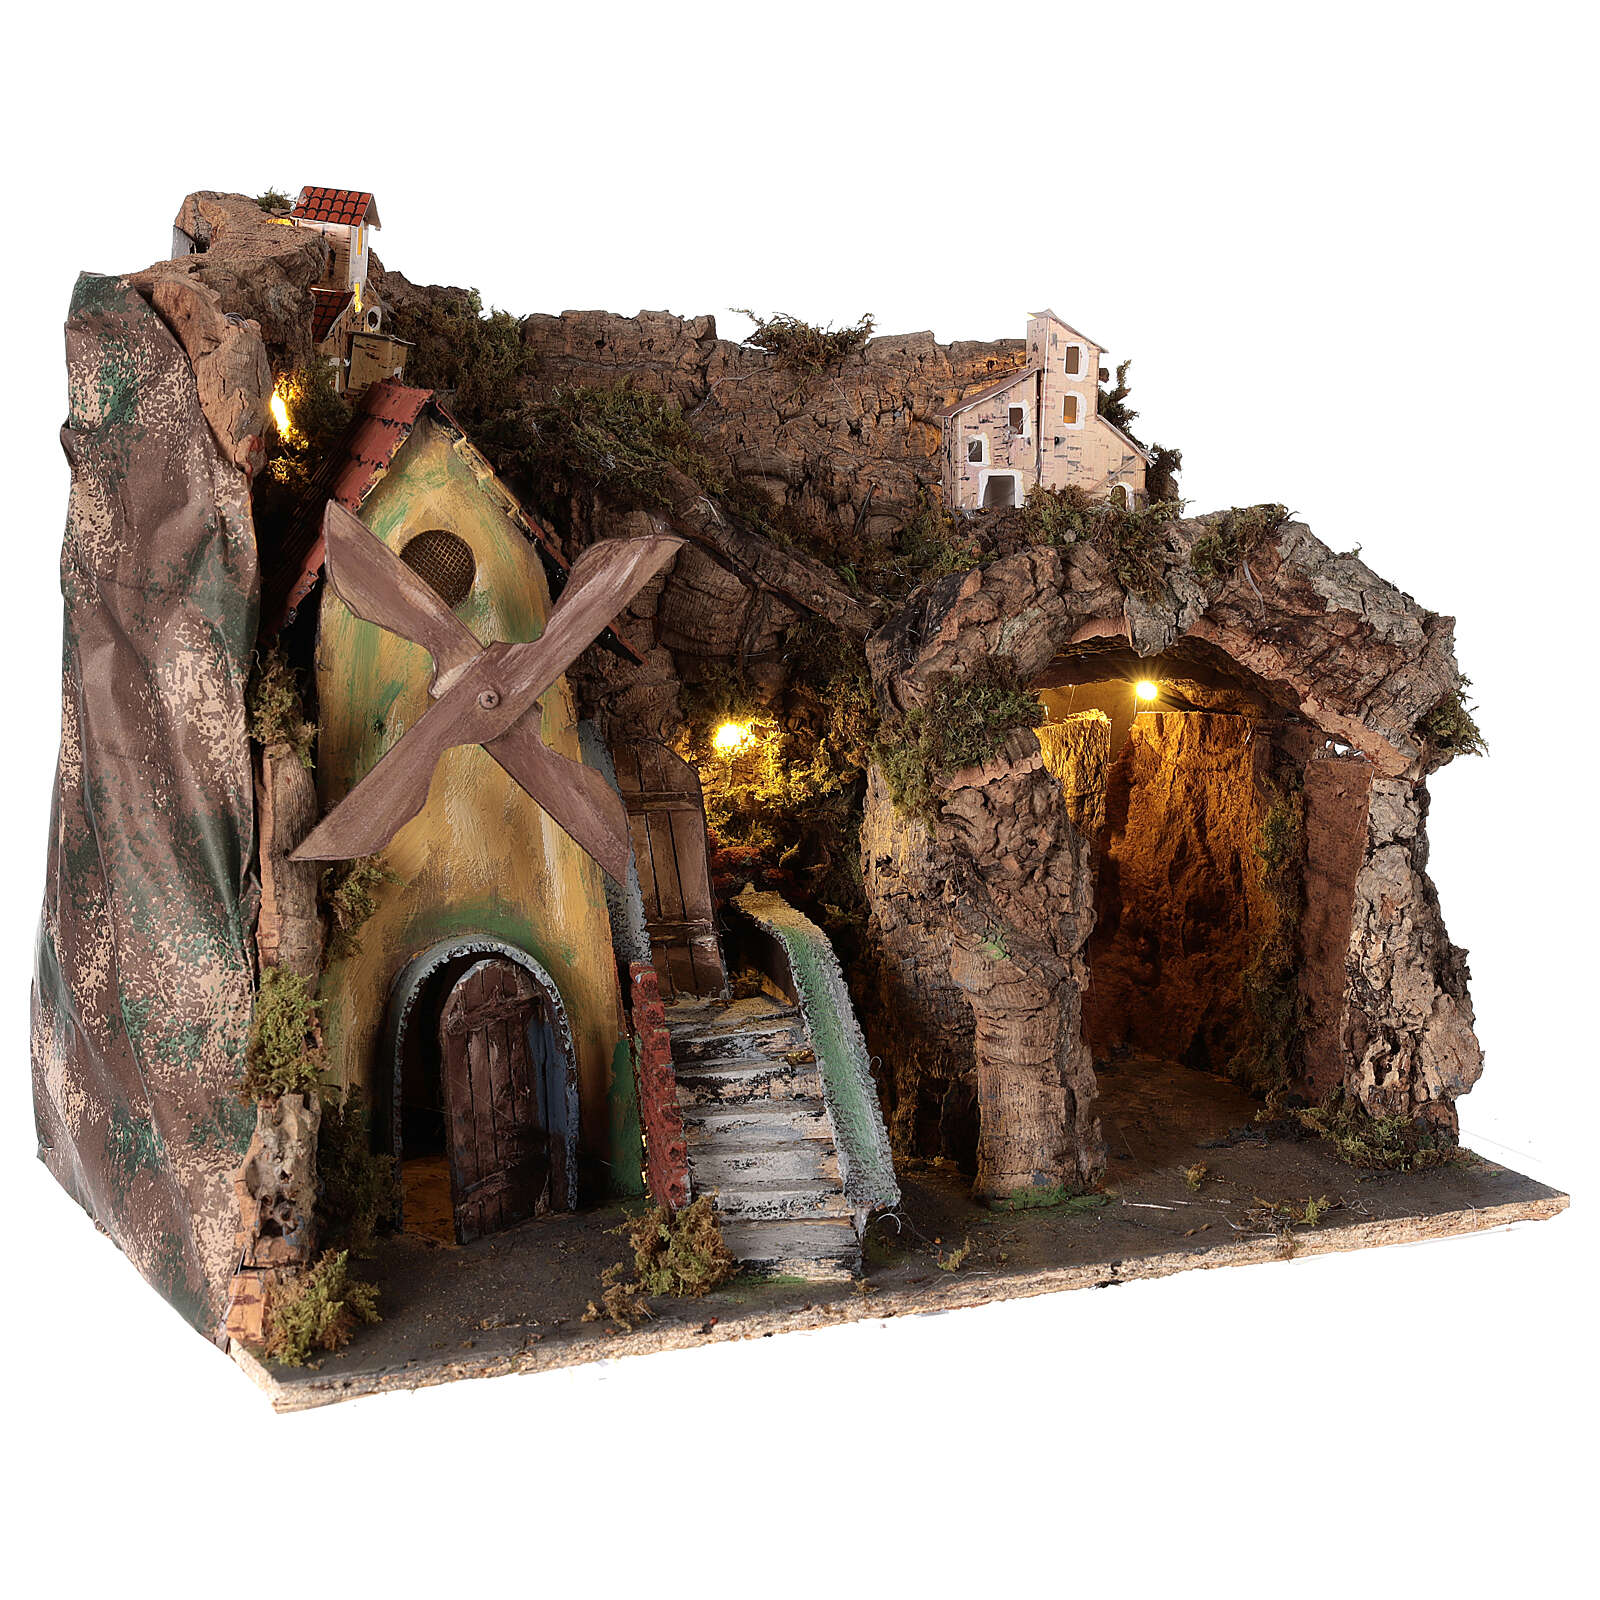 Nativity scene setting with wind mill 45x30x35 cm for 8-10 cm characters 4